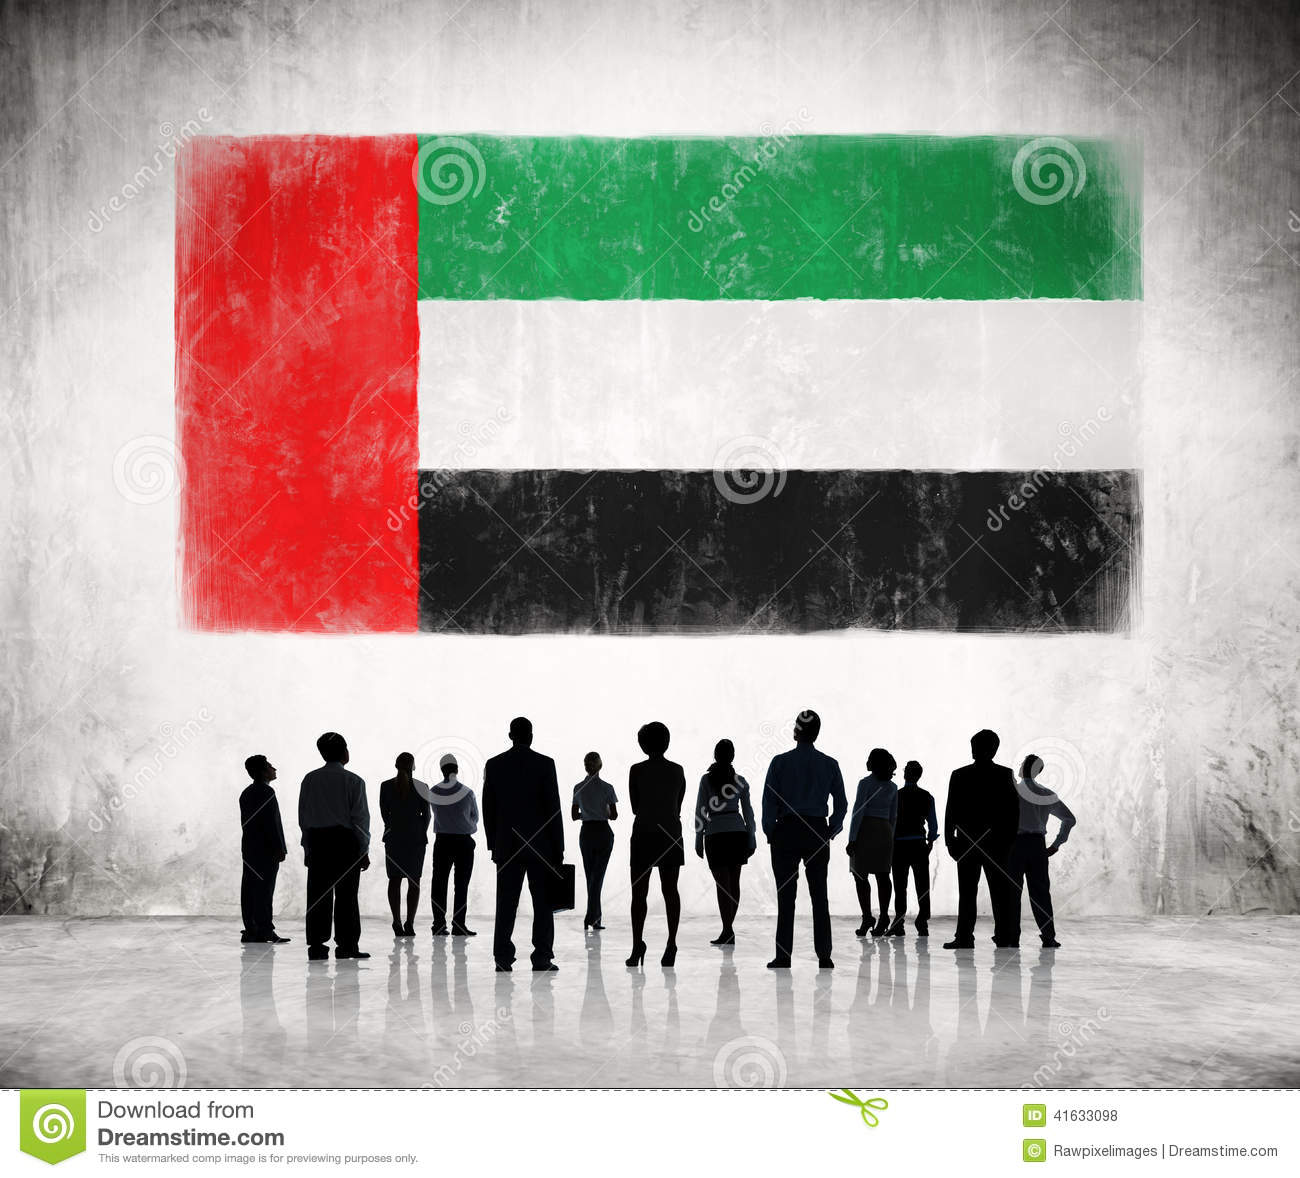 Skyline Car Wallpaper Hd Silhouettes Of Business People Looking At The Flag Of Uae